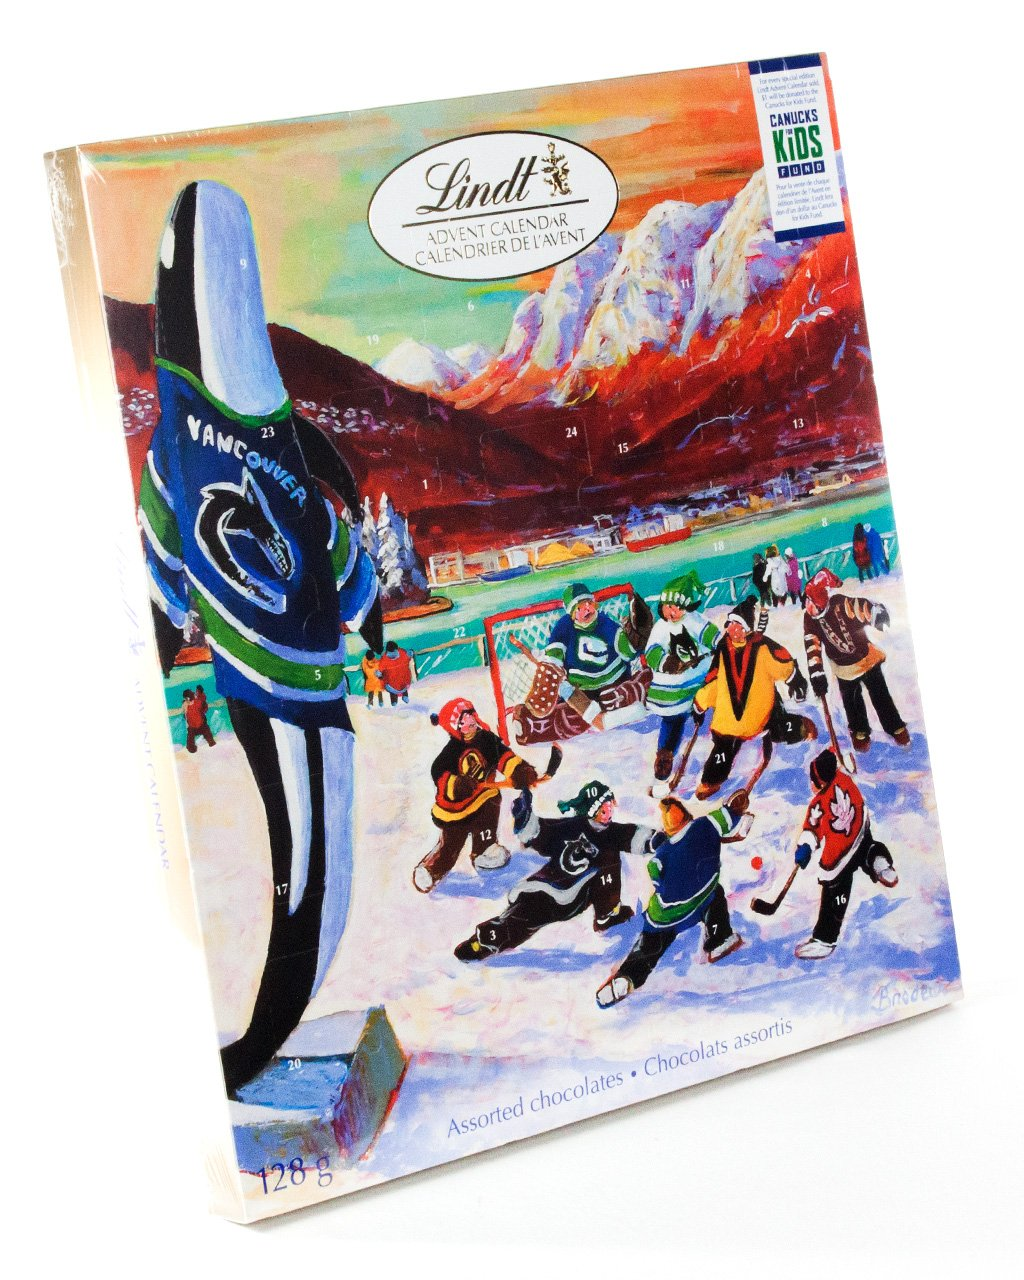 Lindt Chocolate Advent Calendar 128 g Featuring Richard Brodeur Hockey Art Vancouver Canucks Edition